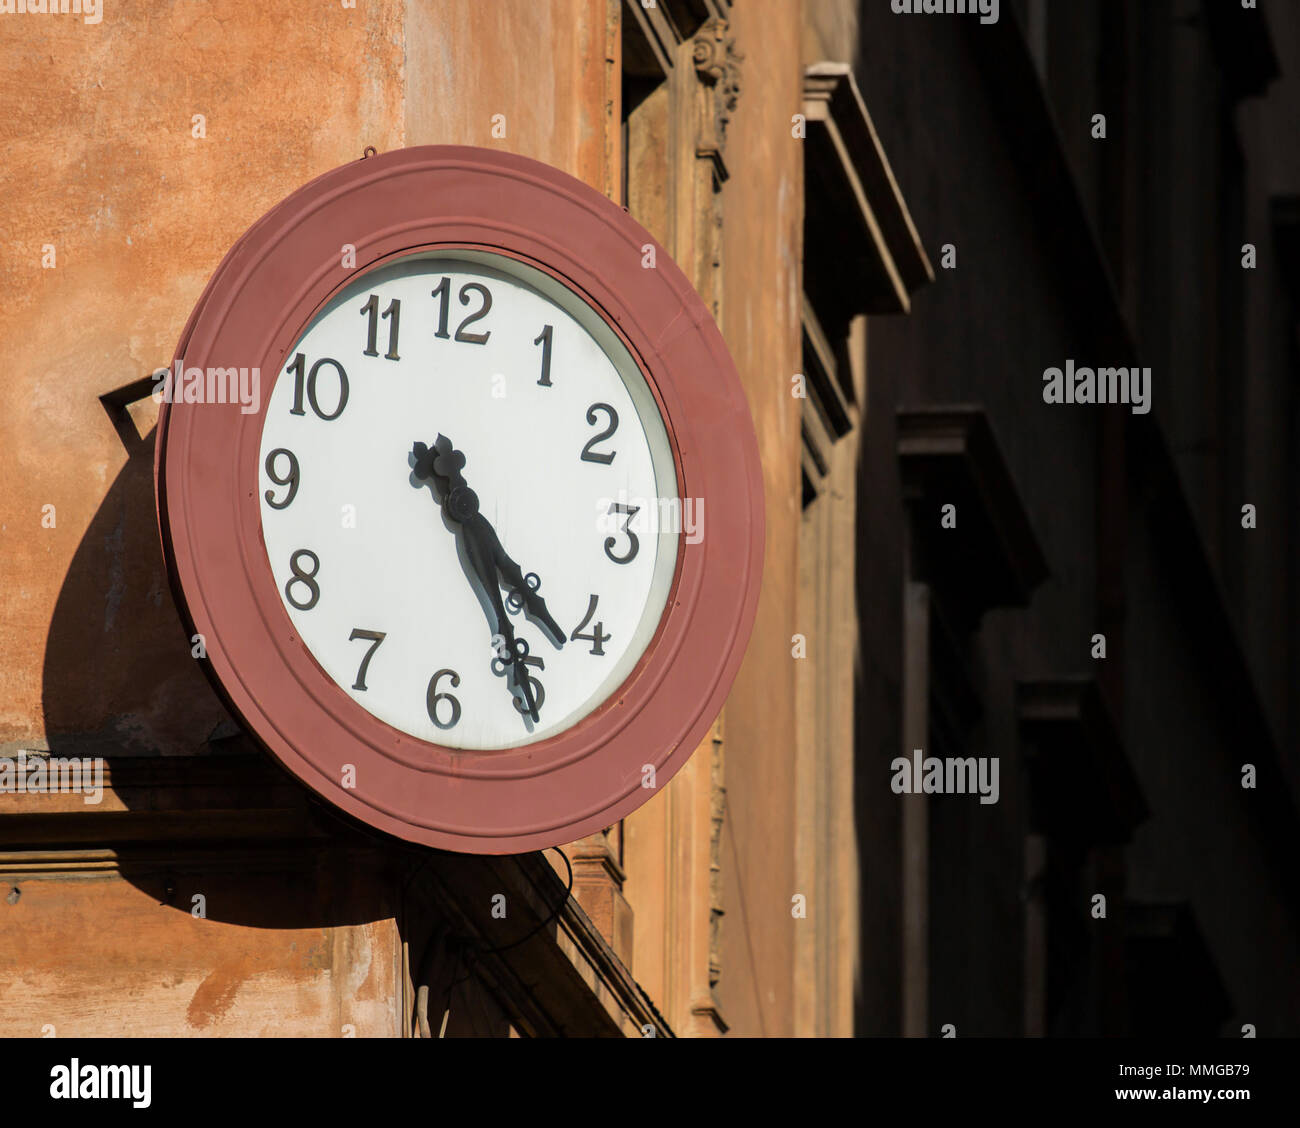 Clock in Rome, Italy, Europe - Stock Image